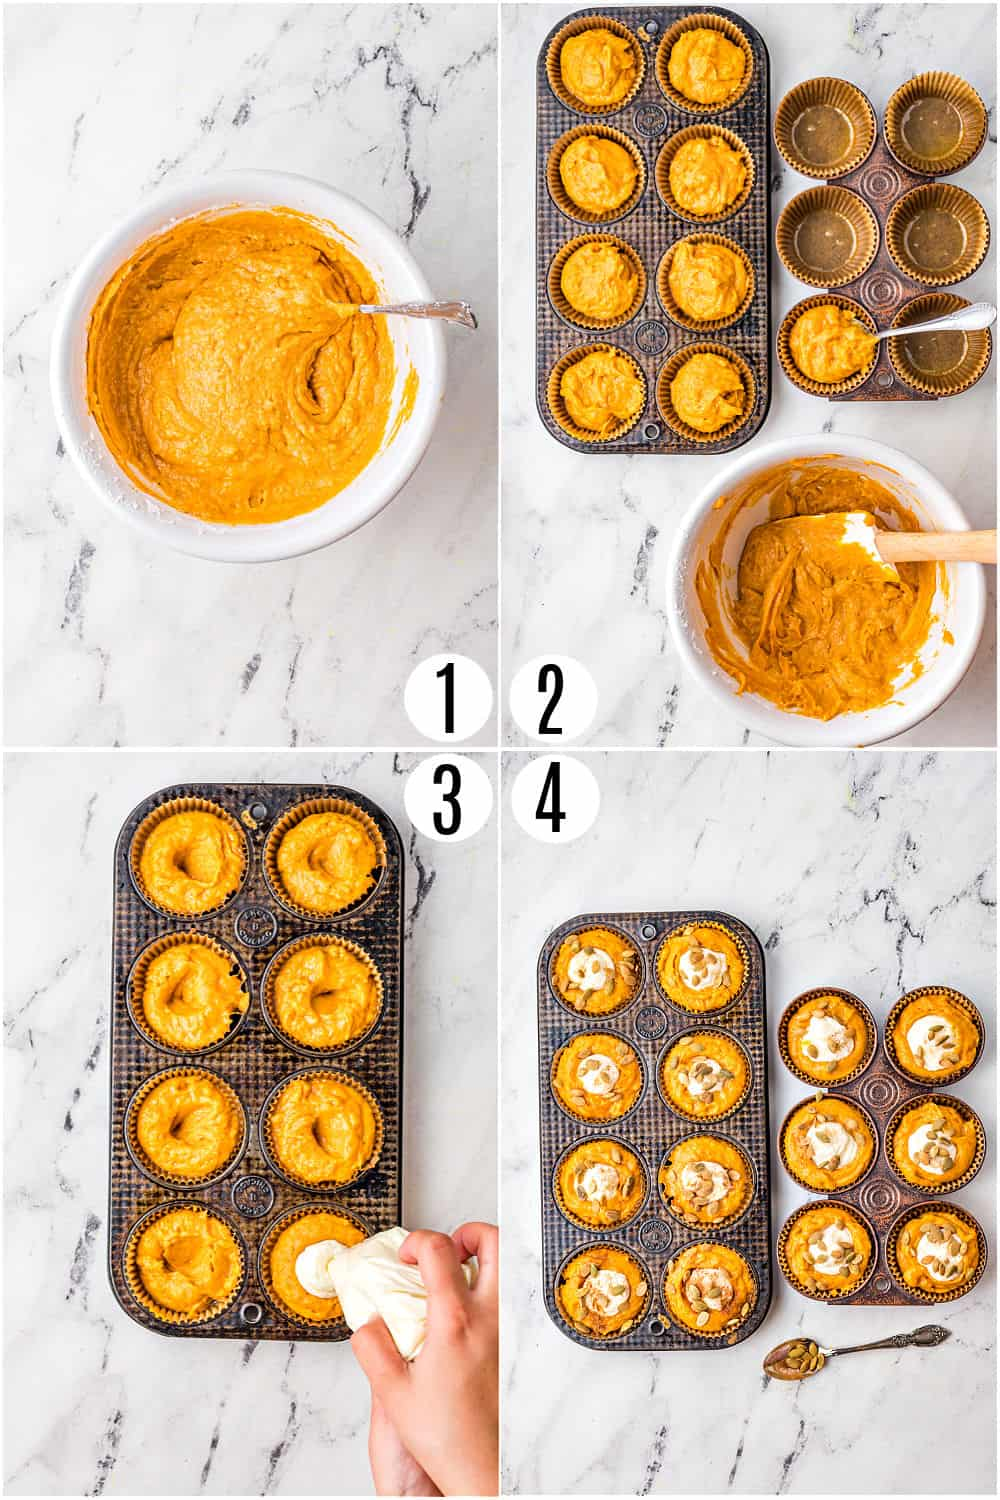 Step by step photos showing how to make cream cheese filled pumpkin muffins.